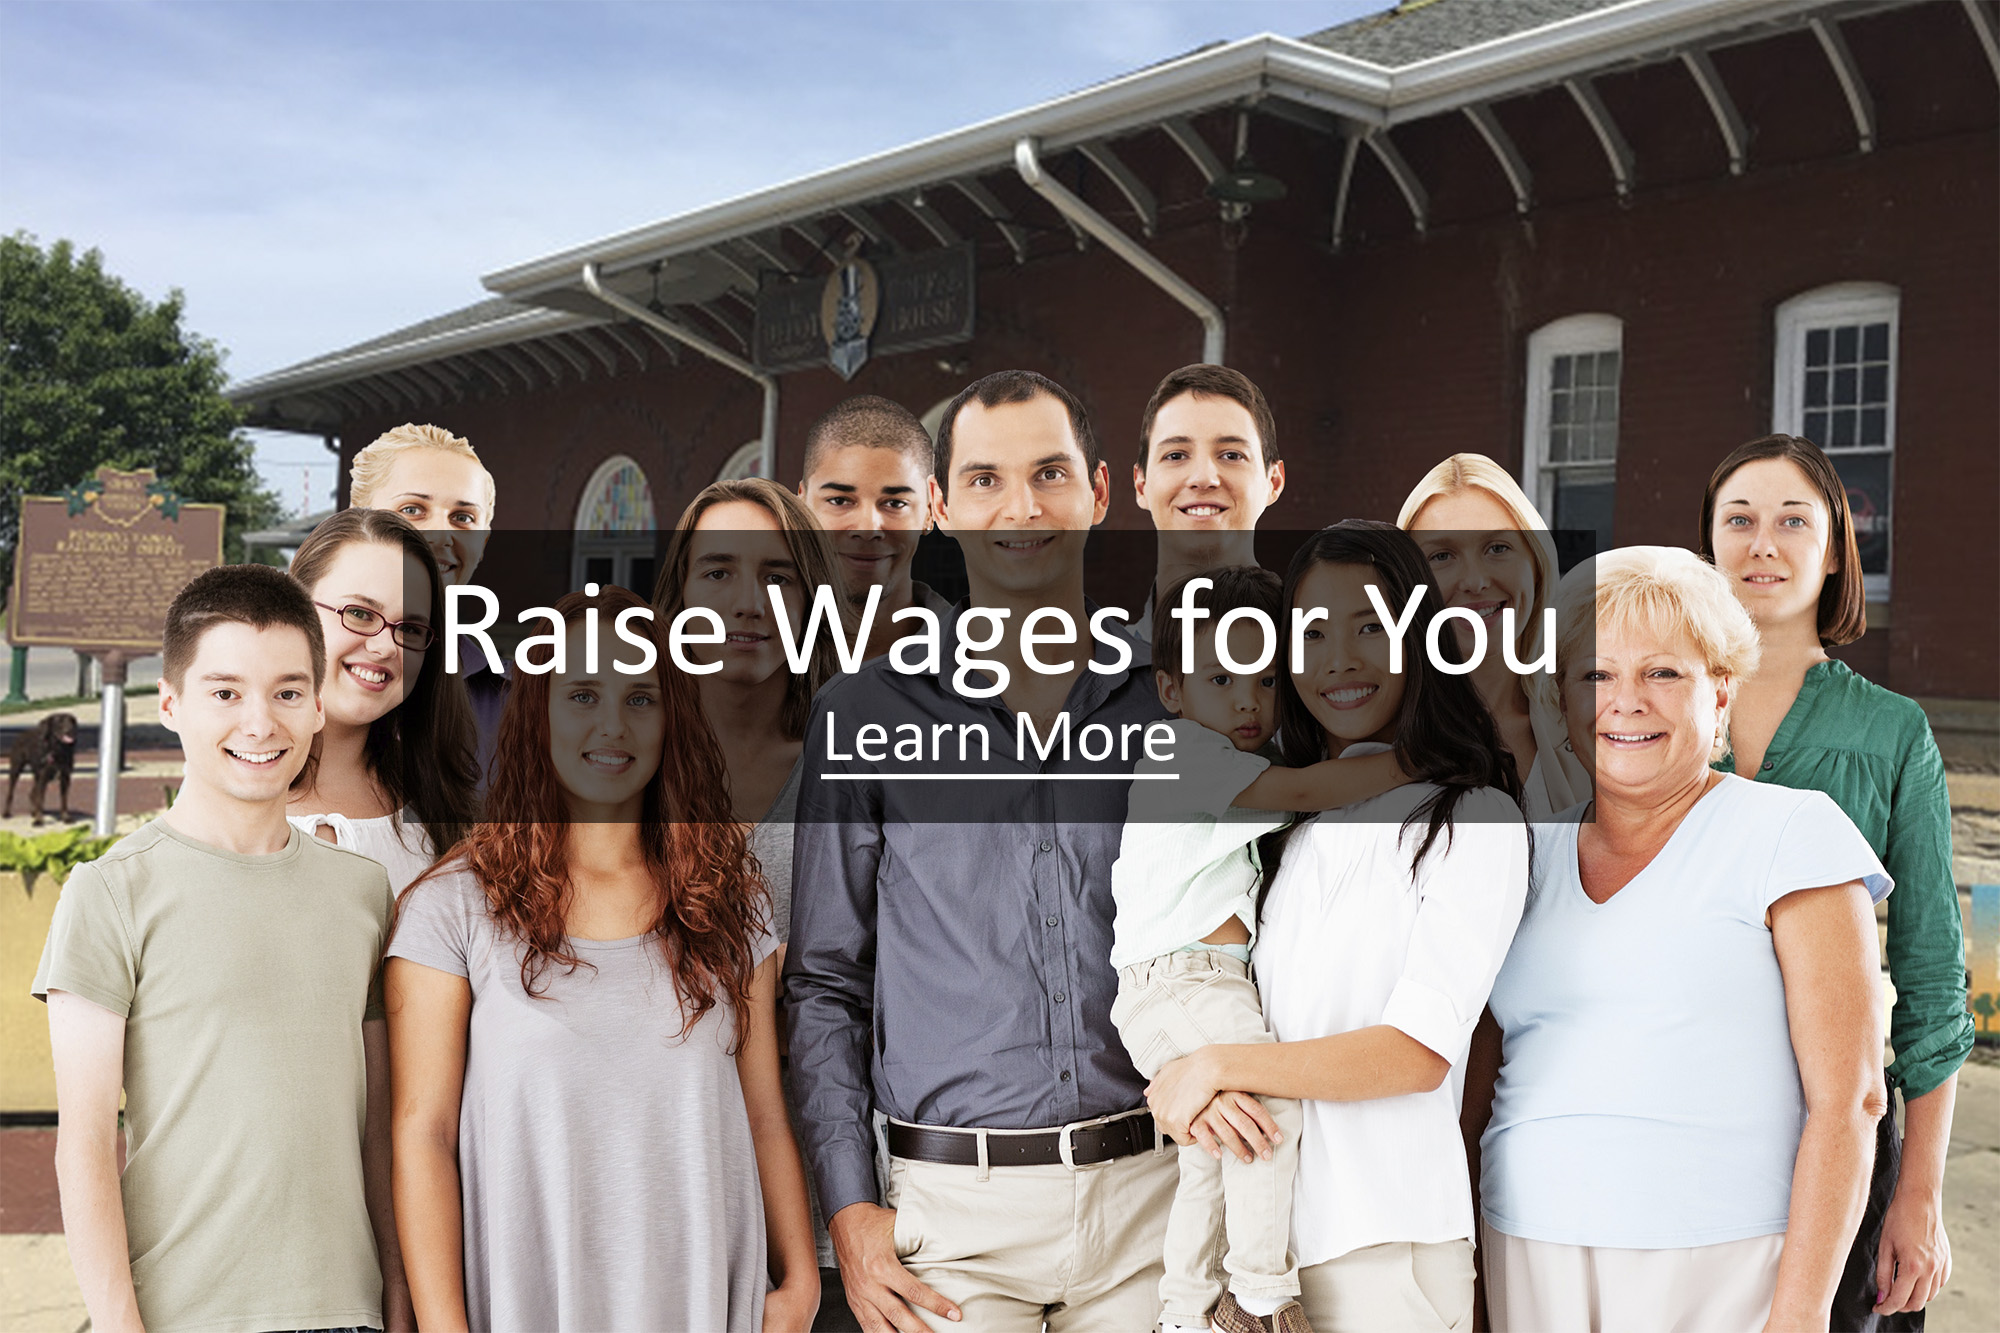 Raise Wages for You